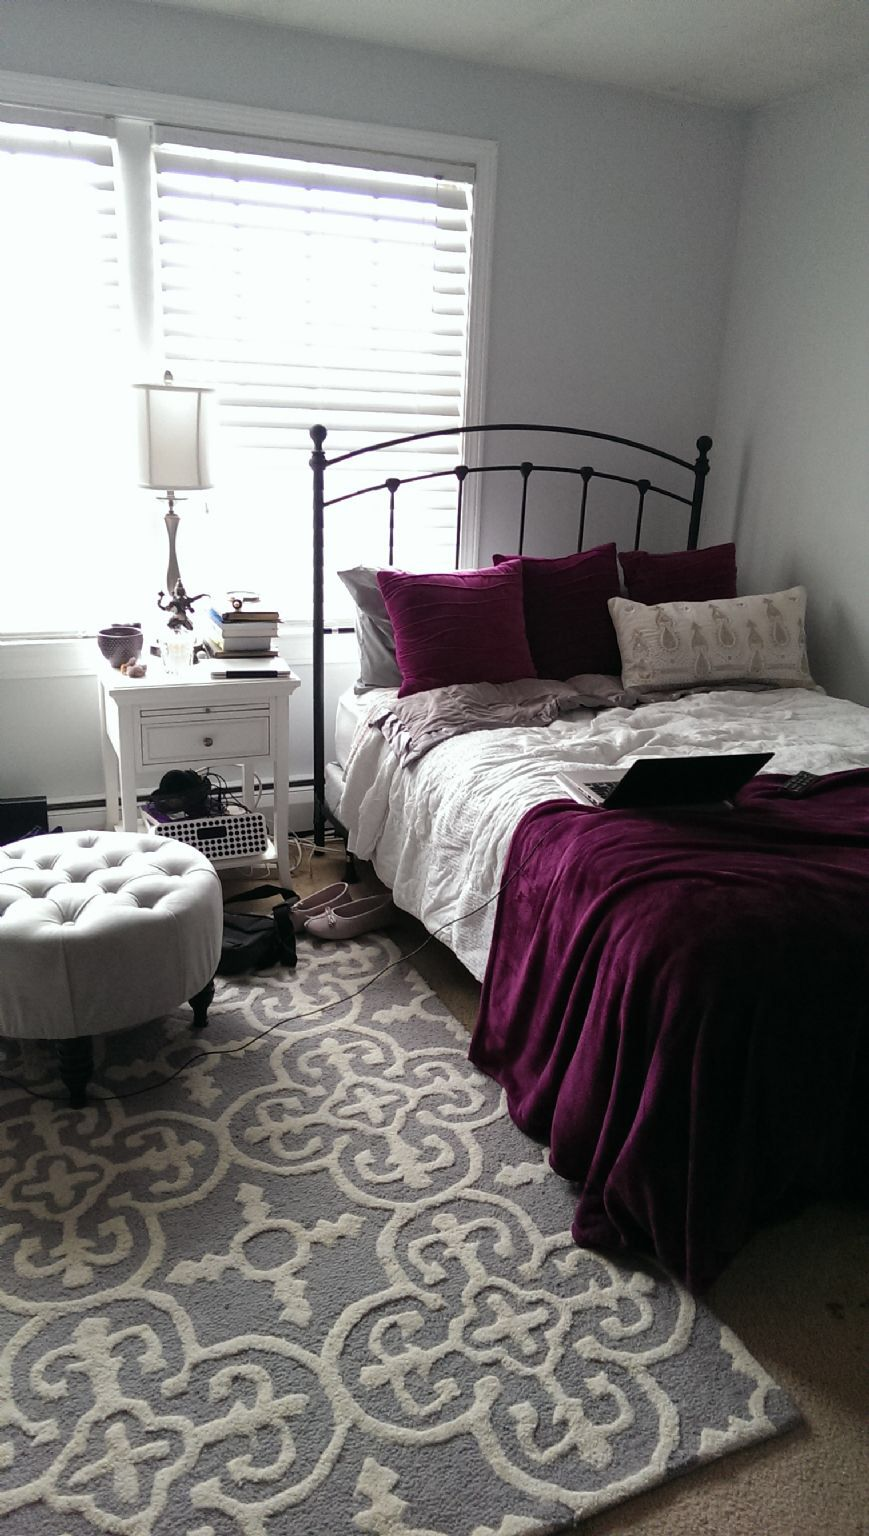 Marilyn Monroe Stuff For Bedroom Except I Would Switch Out Marilyn Monroe With Something Else My